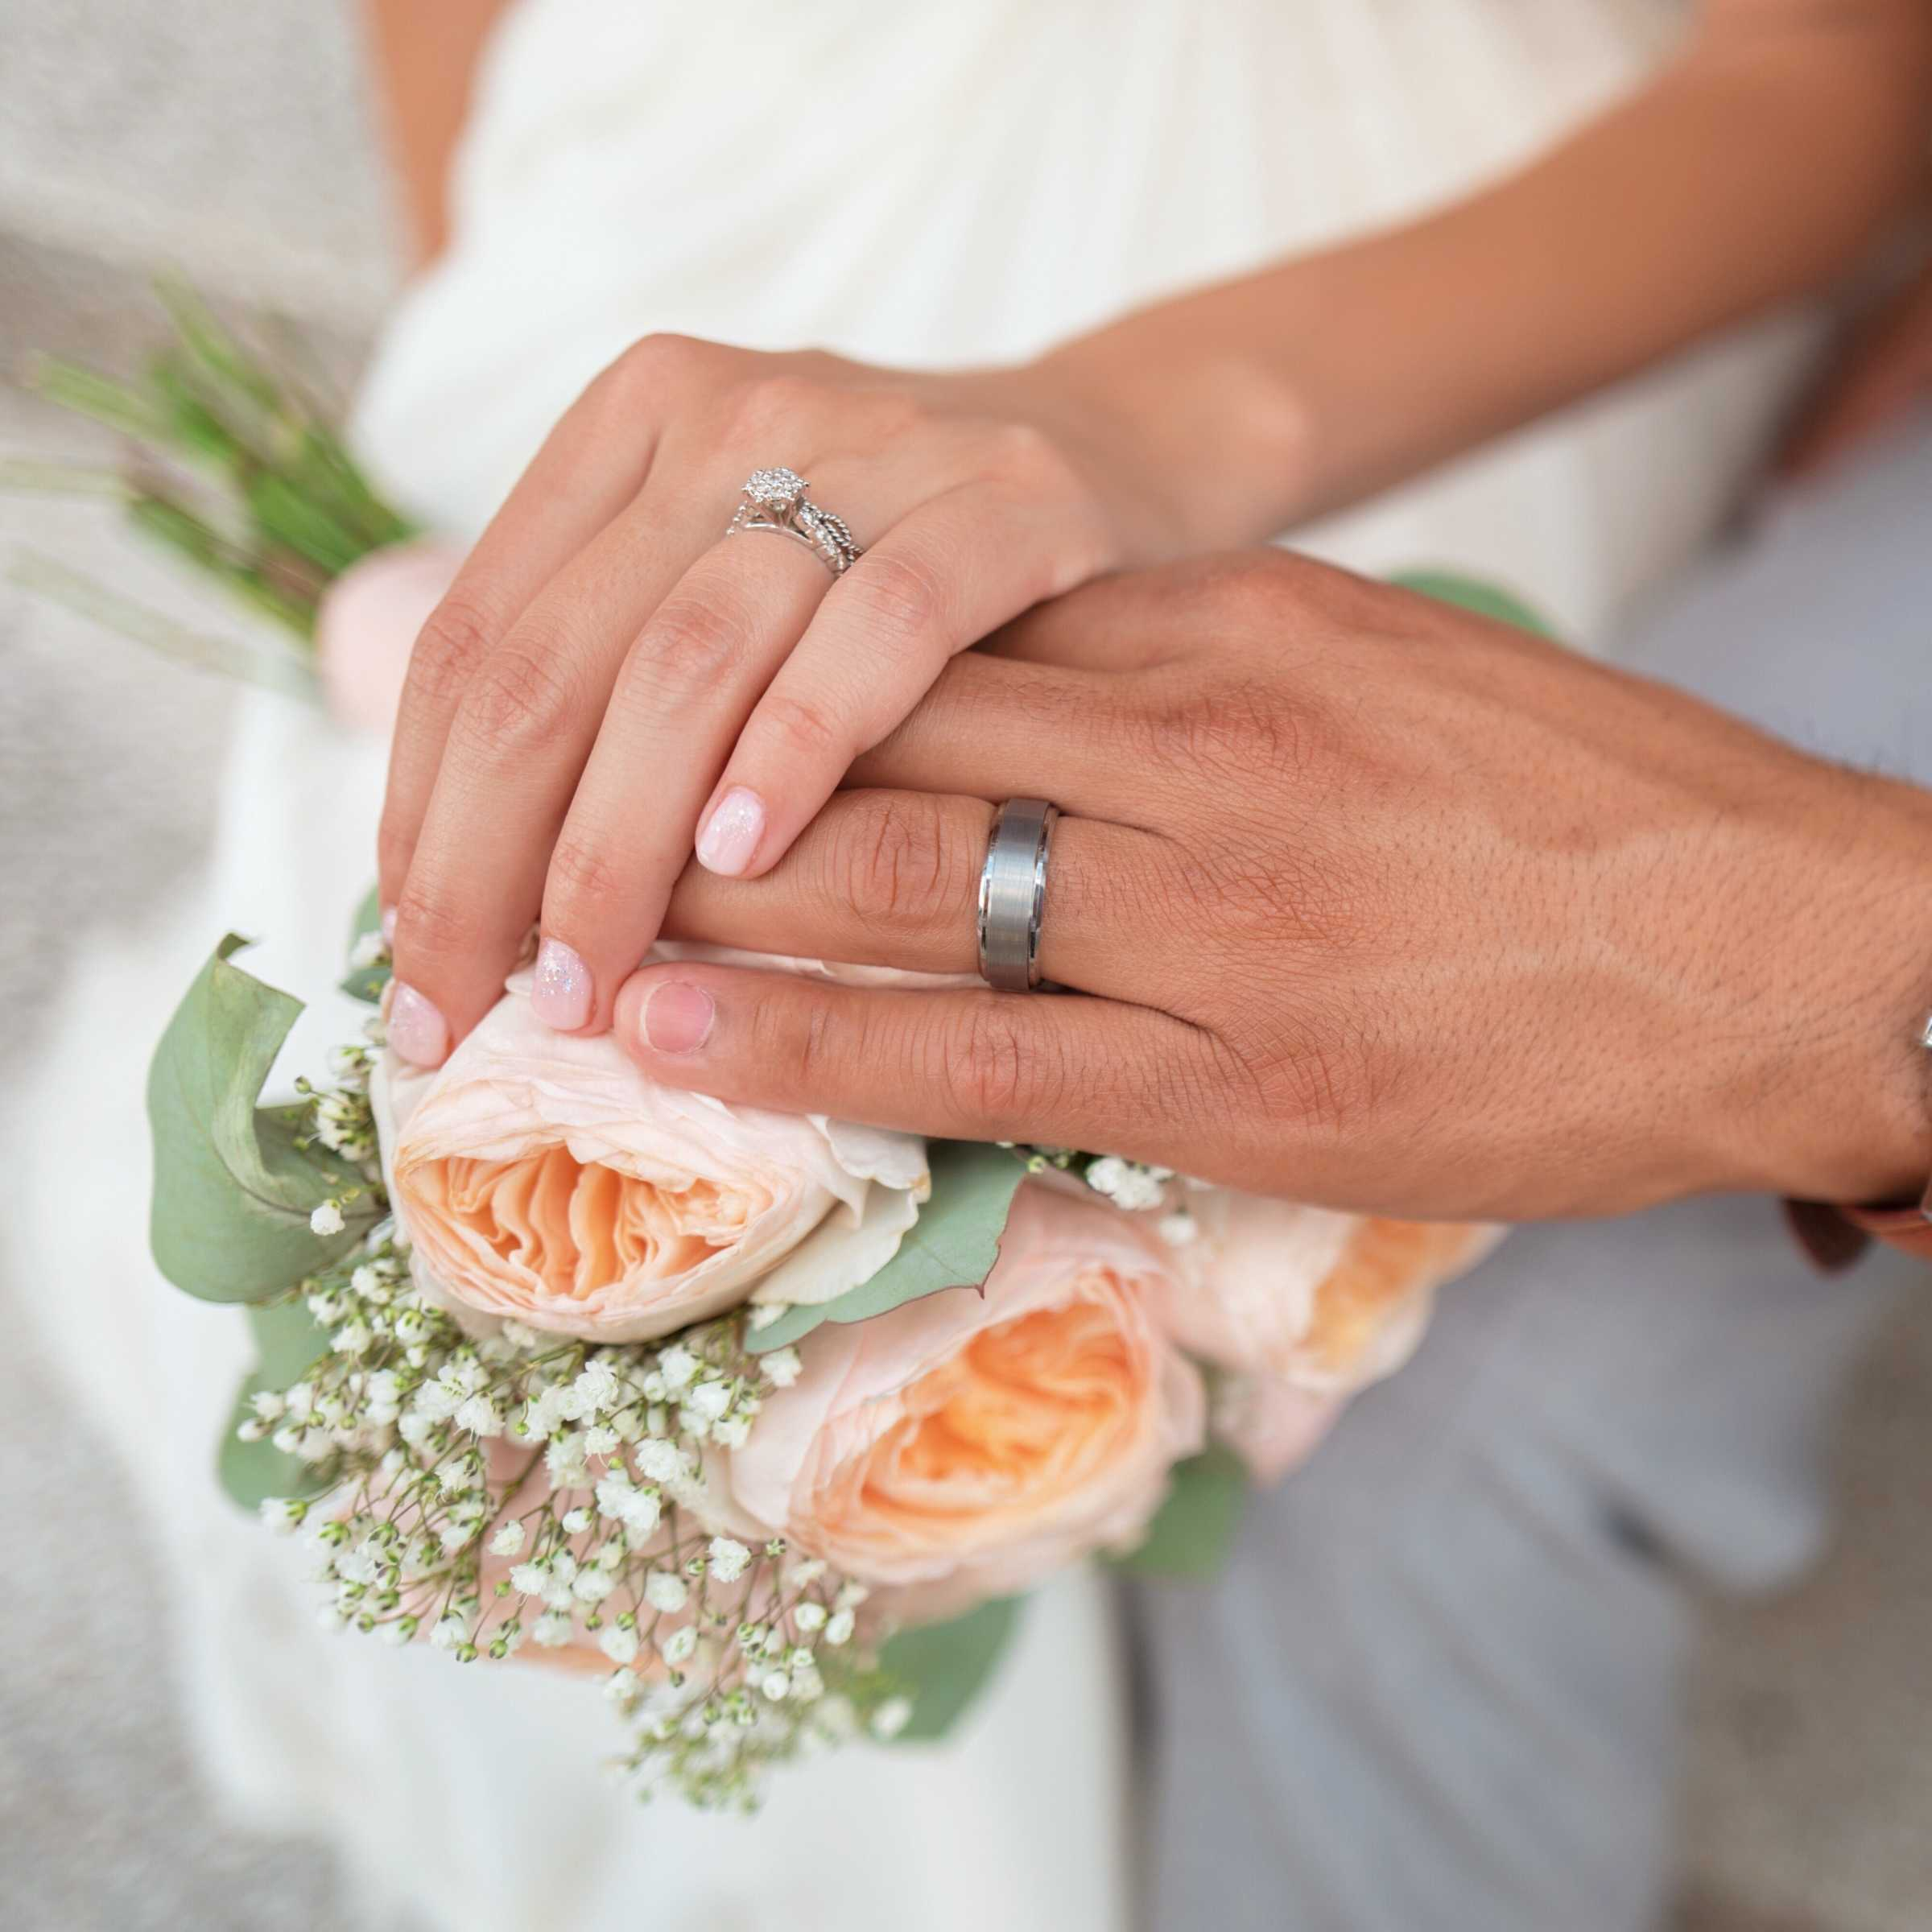 A wedding couple showing their rings over a bouquet of flowers.